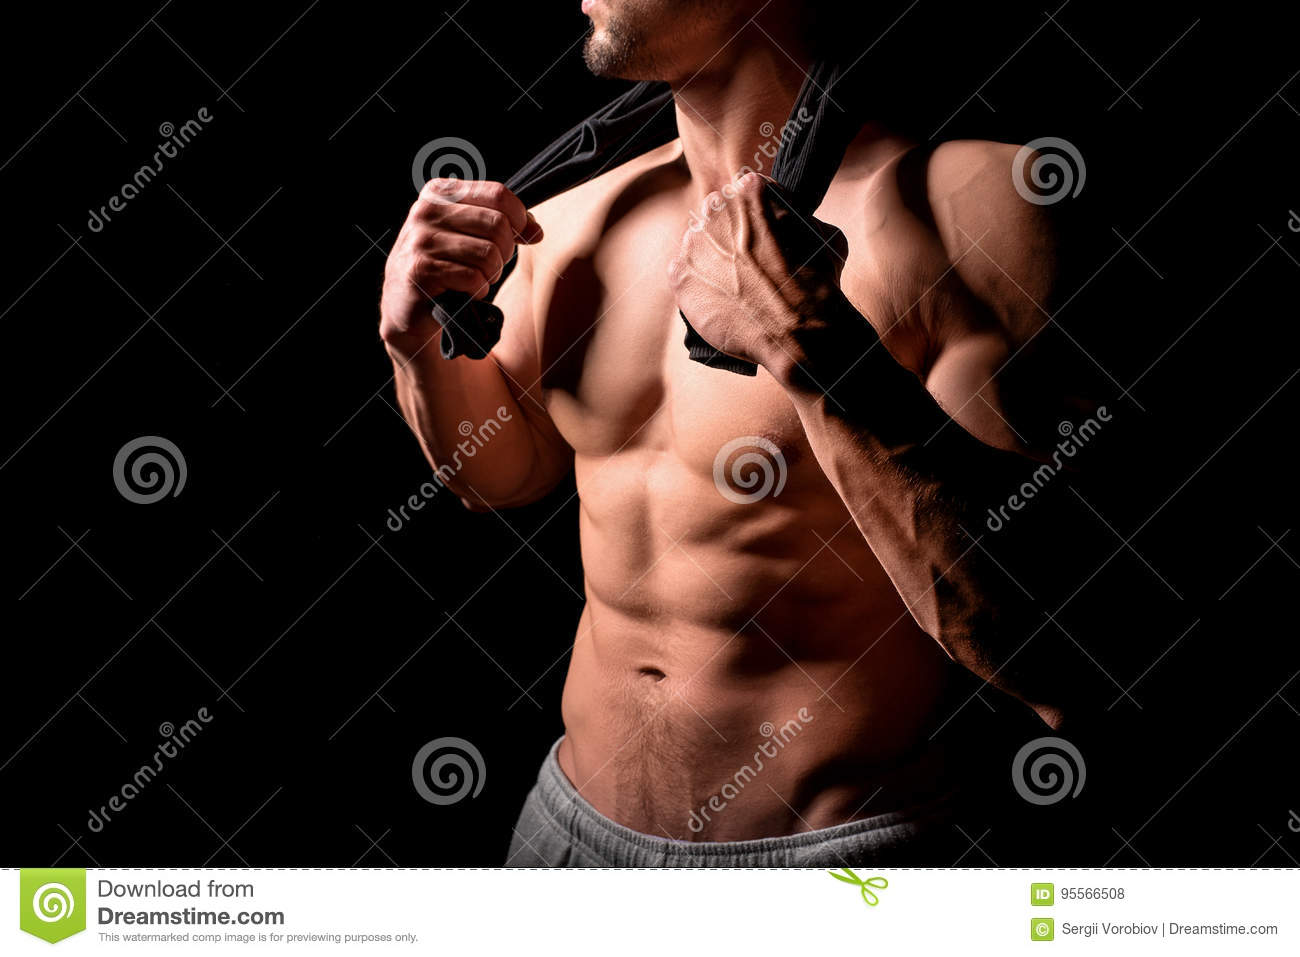 Download Fitness Concept. Muscular And Torso Of Young Man Having Perfect Abs, Bicep And Chest. Male Hunk With Athletic Body. Stock Photo - Image of pretty, chest: 95566508